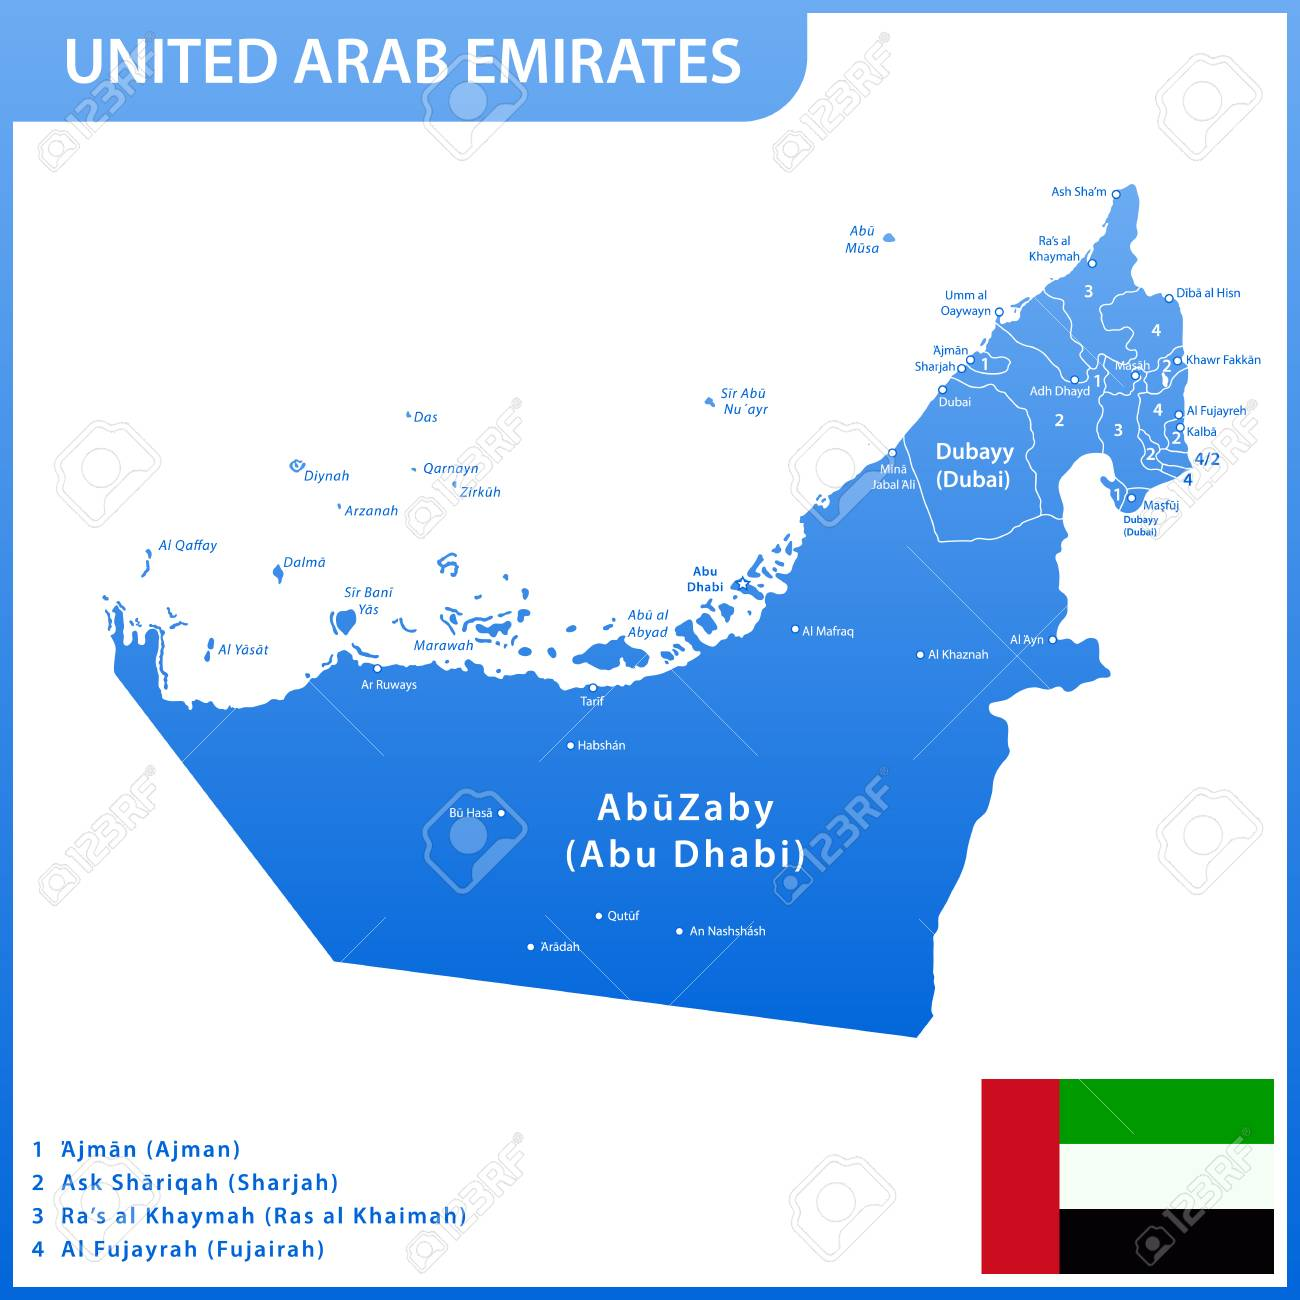 The detailed map of the UAE with regions or states and cities,.. on andorra map cities, netherlands map cities, singapore map cities, map of canada cities, paraguay map cities, americas map cities, europe map cities, armenia map cities, czech republic map cities, map of north carolina cities, ecuador map cities, alaska map cities, san marino map cities, northwest us map cities, philadelphia map cities, nepal map cities, cameroon map cities, uganda map cities, albania map cities, haiti map cities,